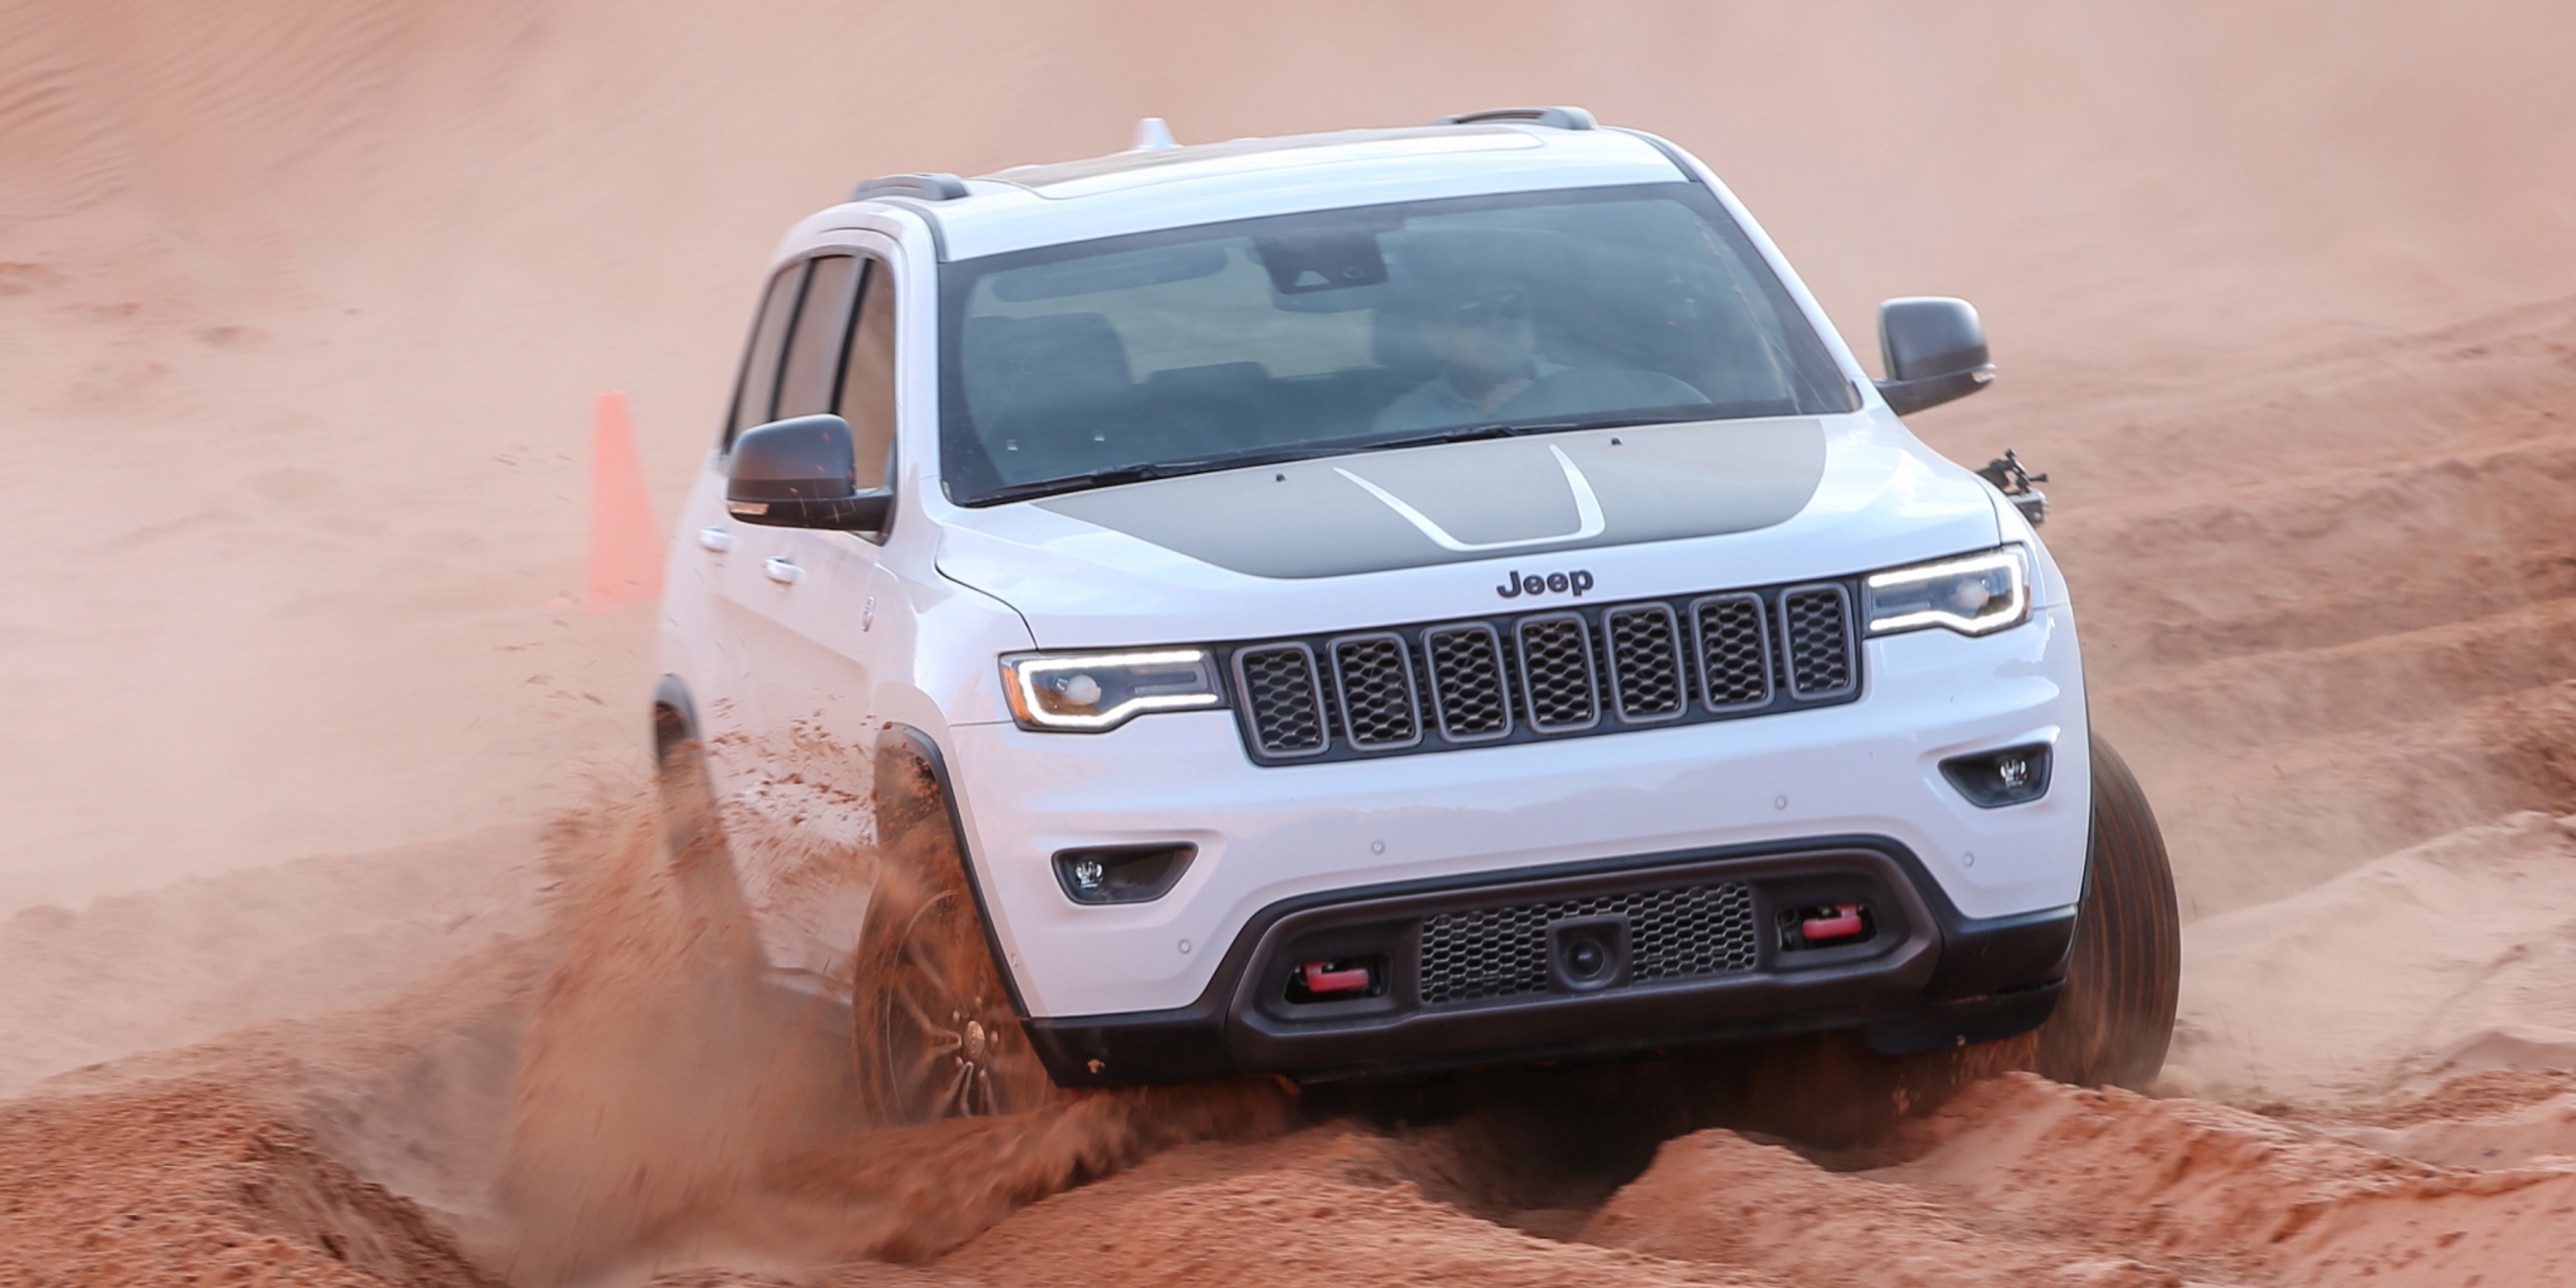 woodstock trailhawk used for cherokee price jeep htm nb sale